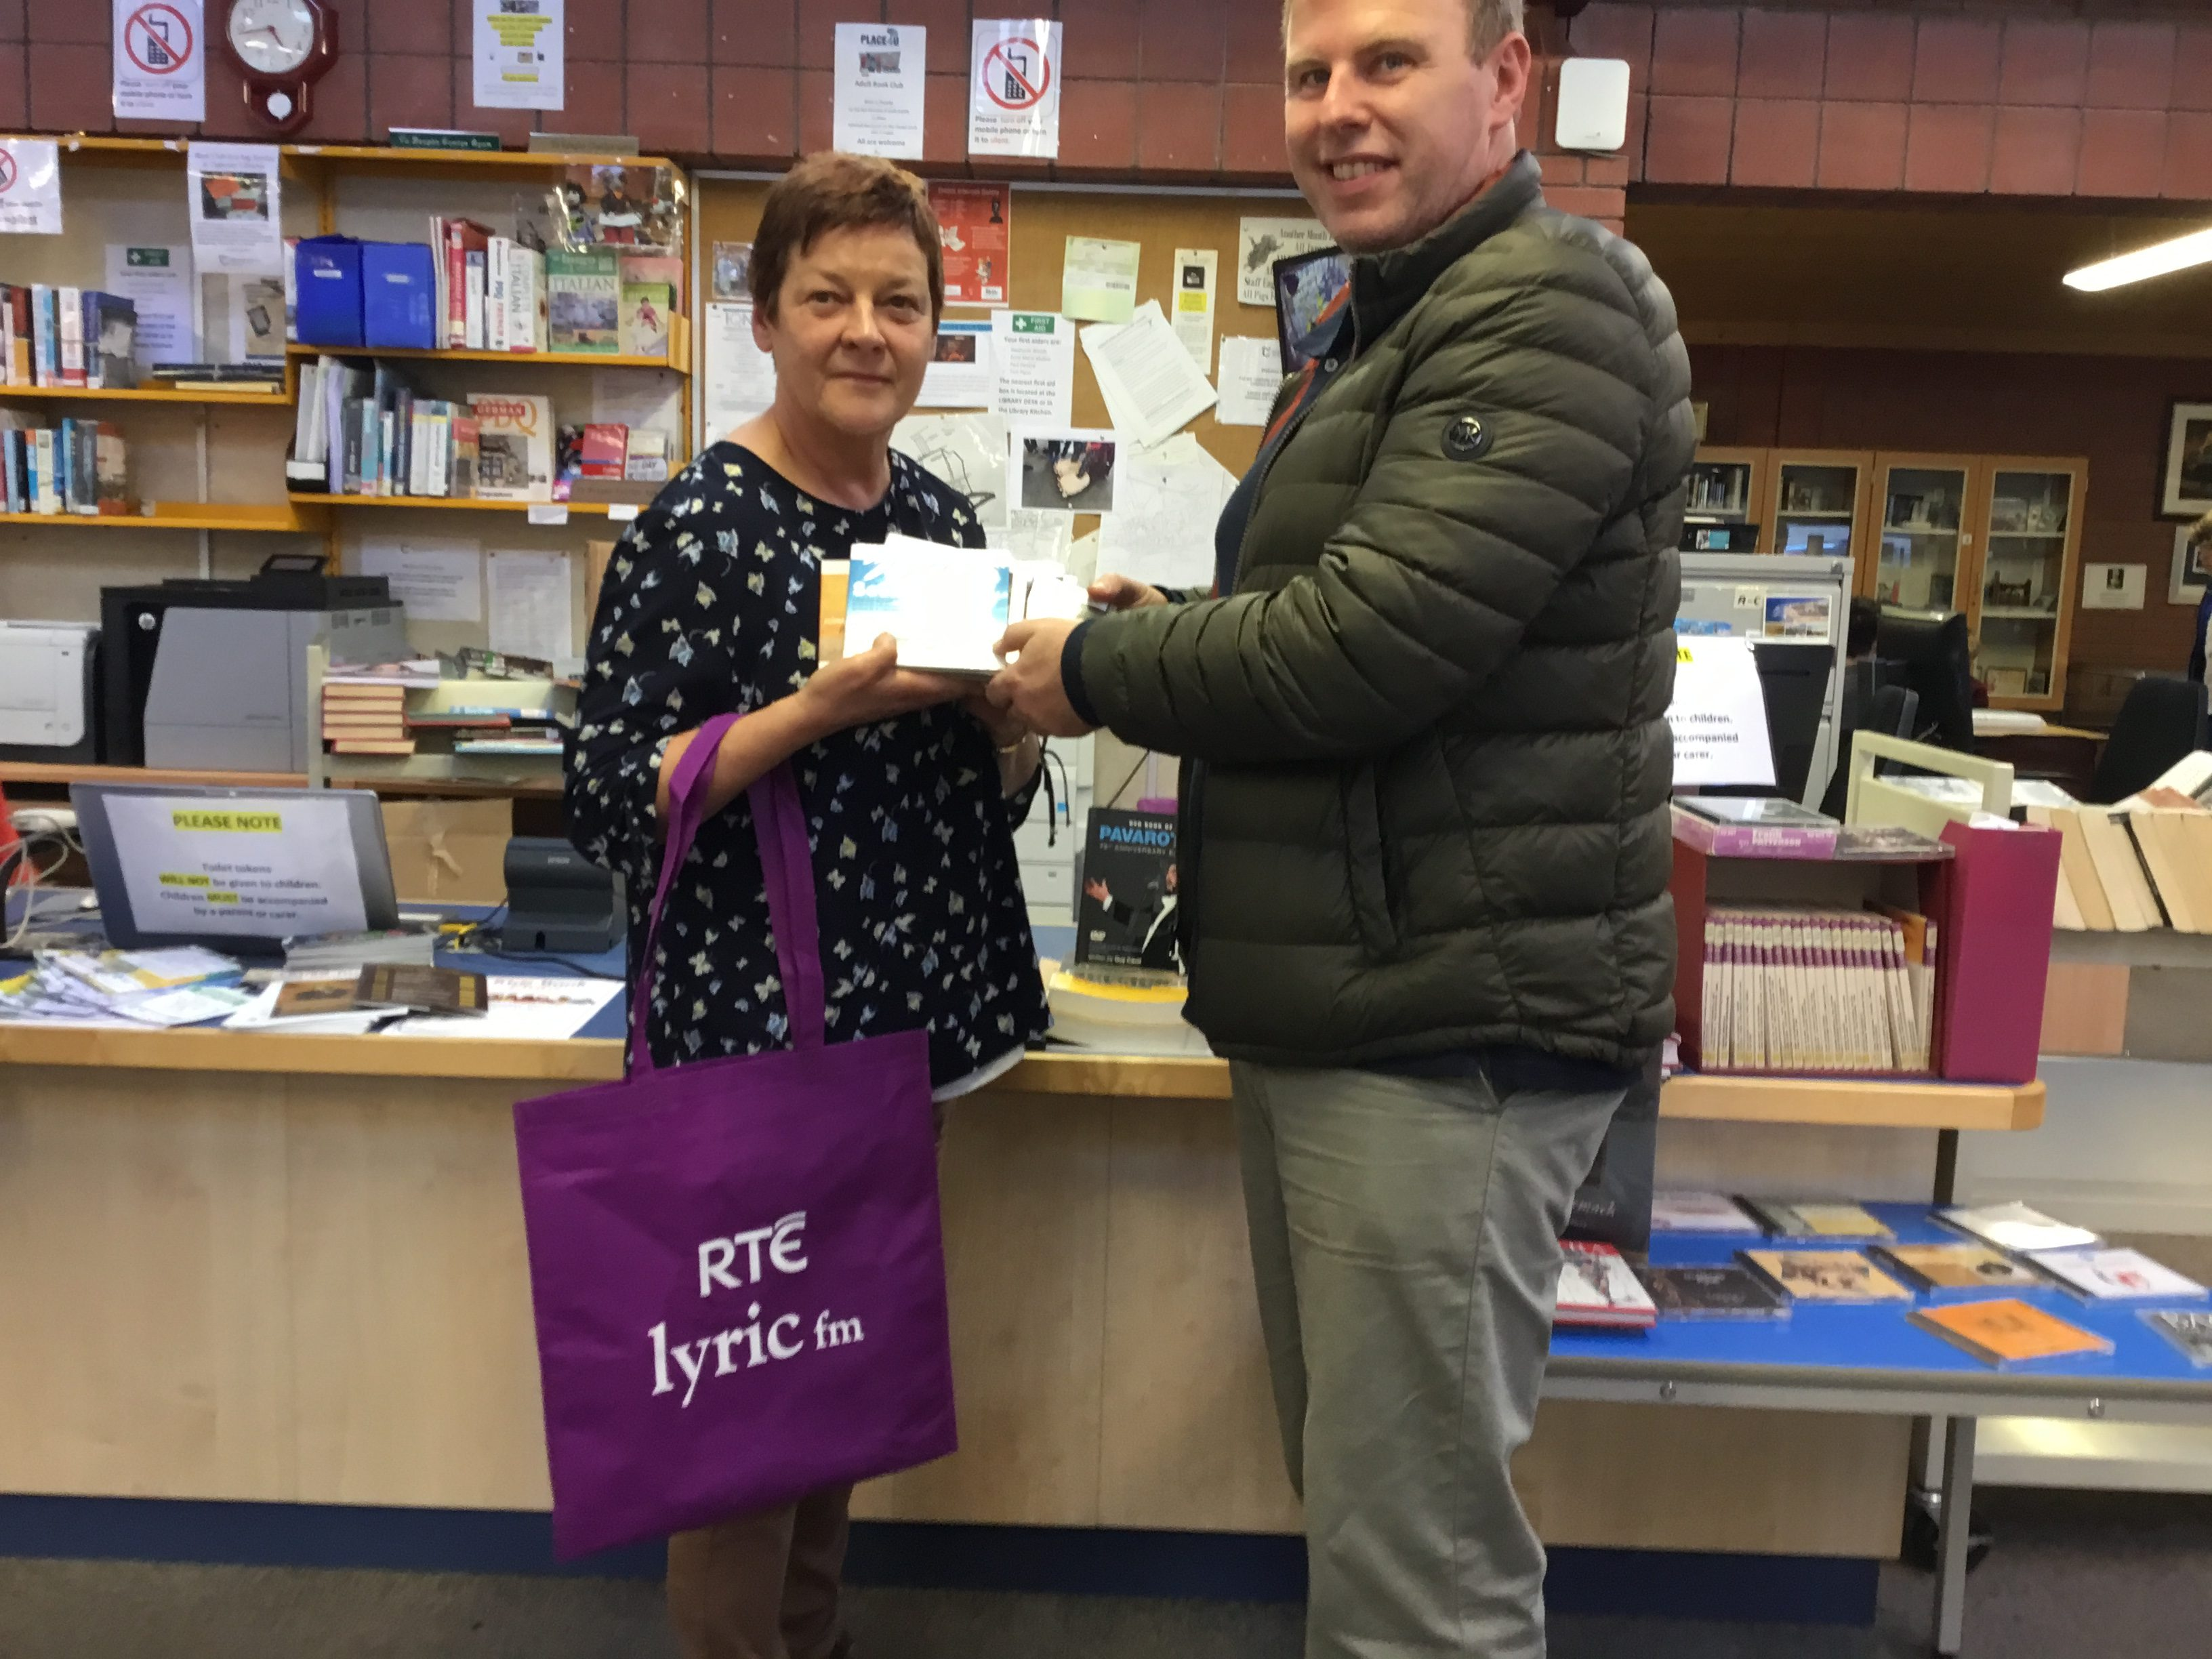 Lyric FM Donation To Clonmel Library